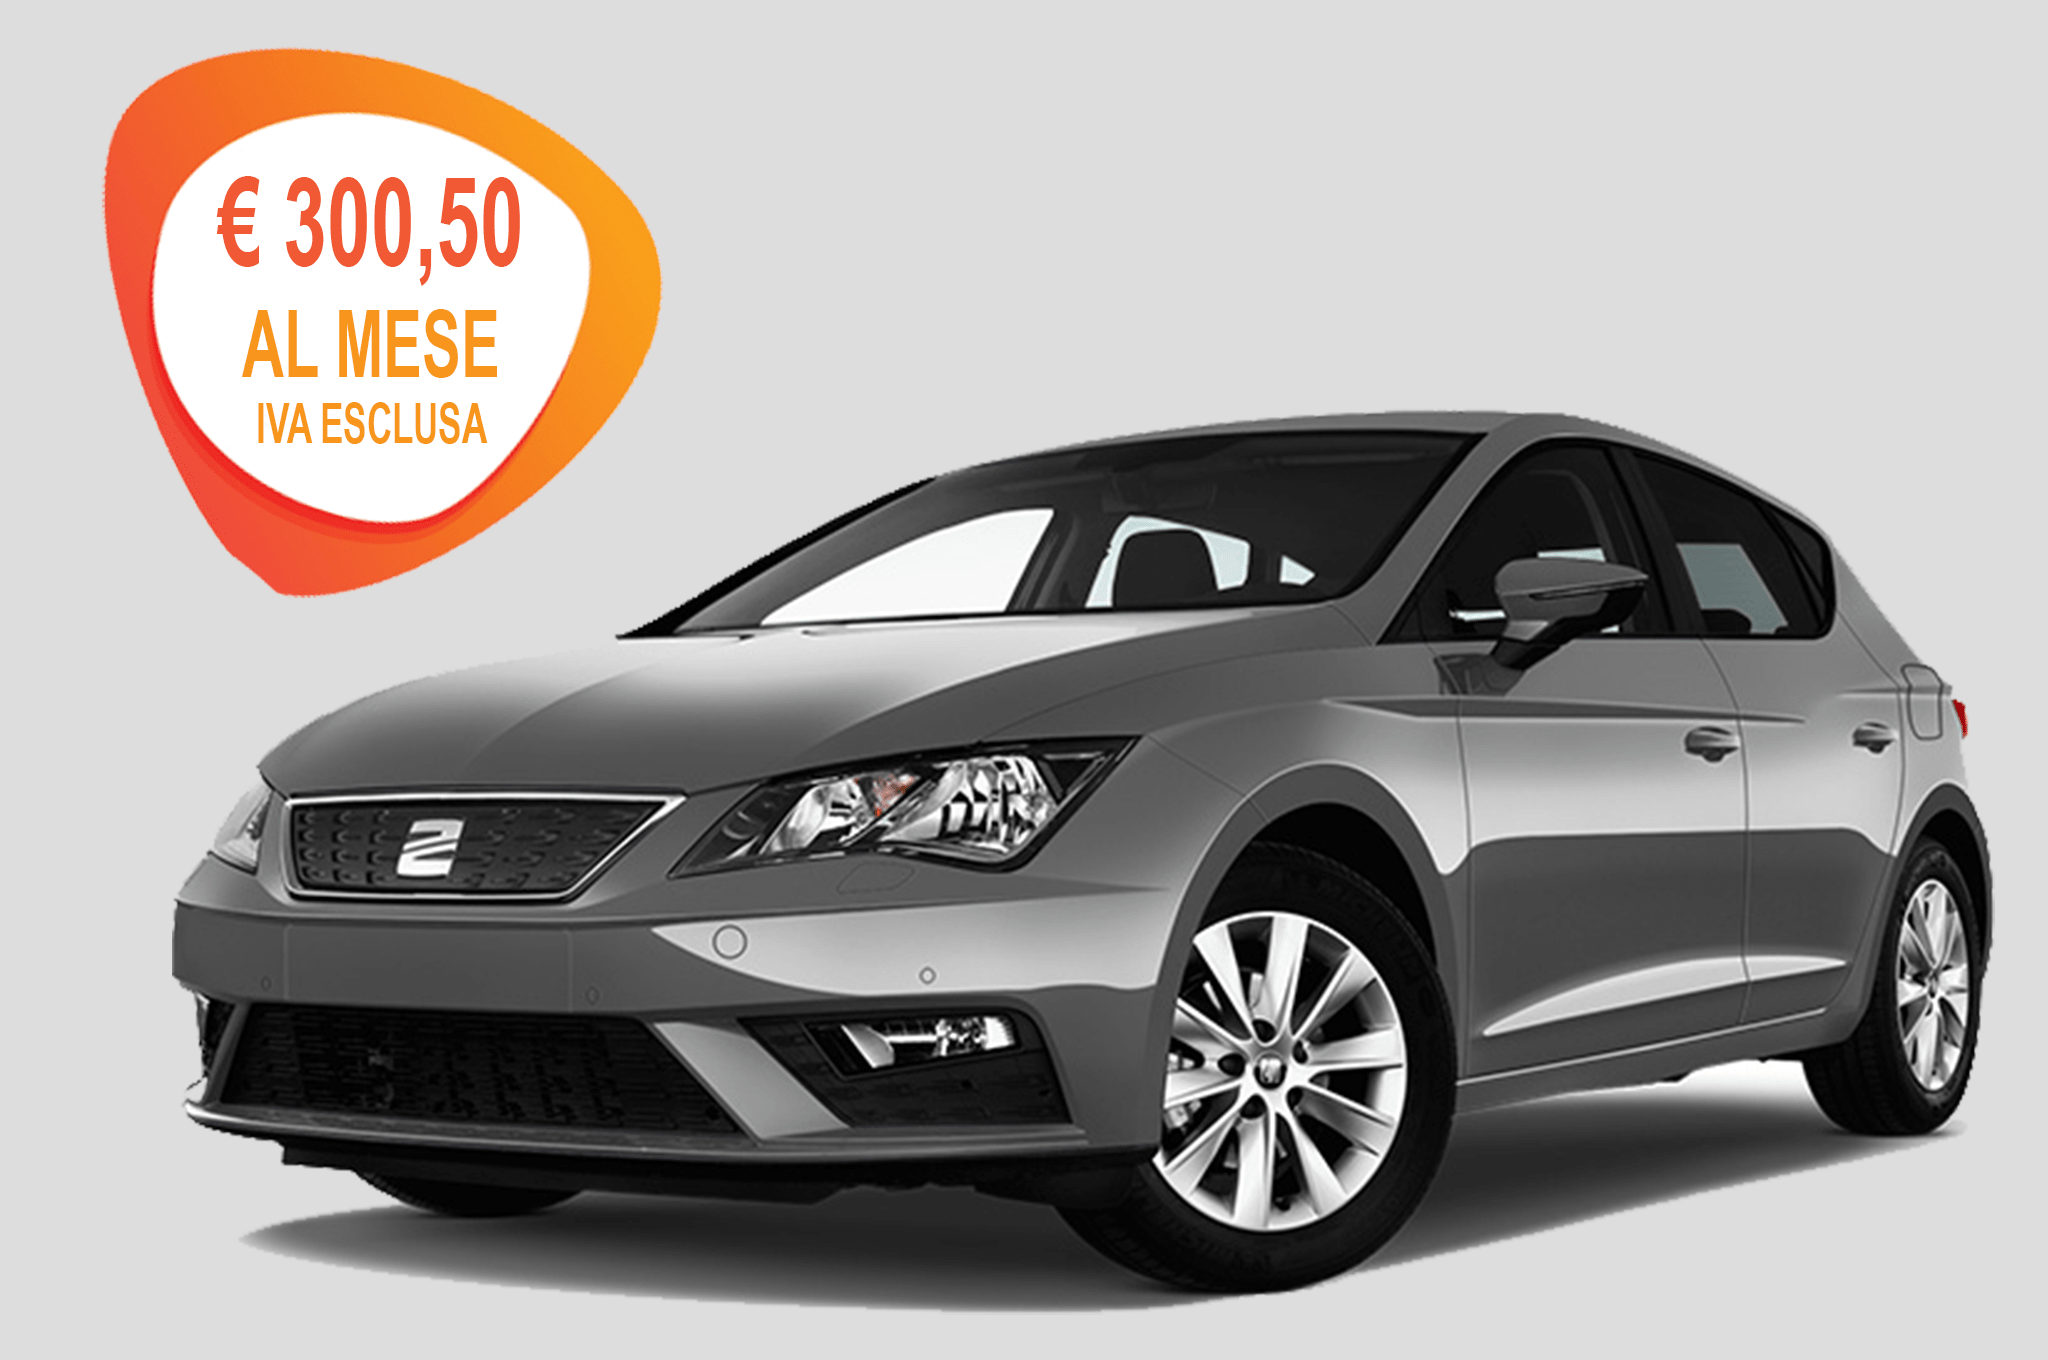 SEAT LEON 1.6 Tdi 85kw Business Dsg